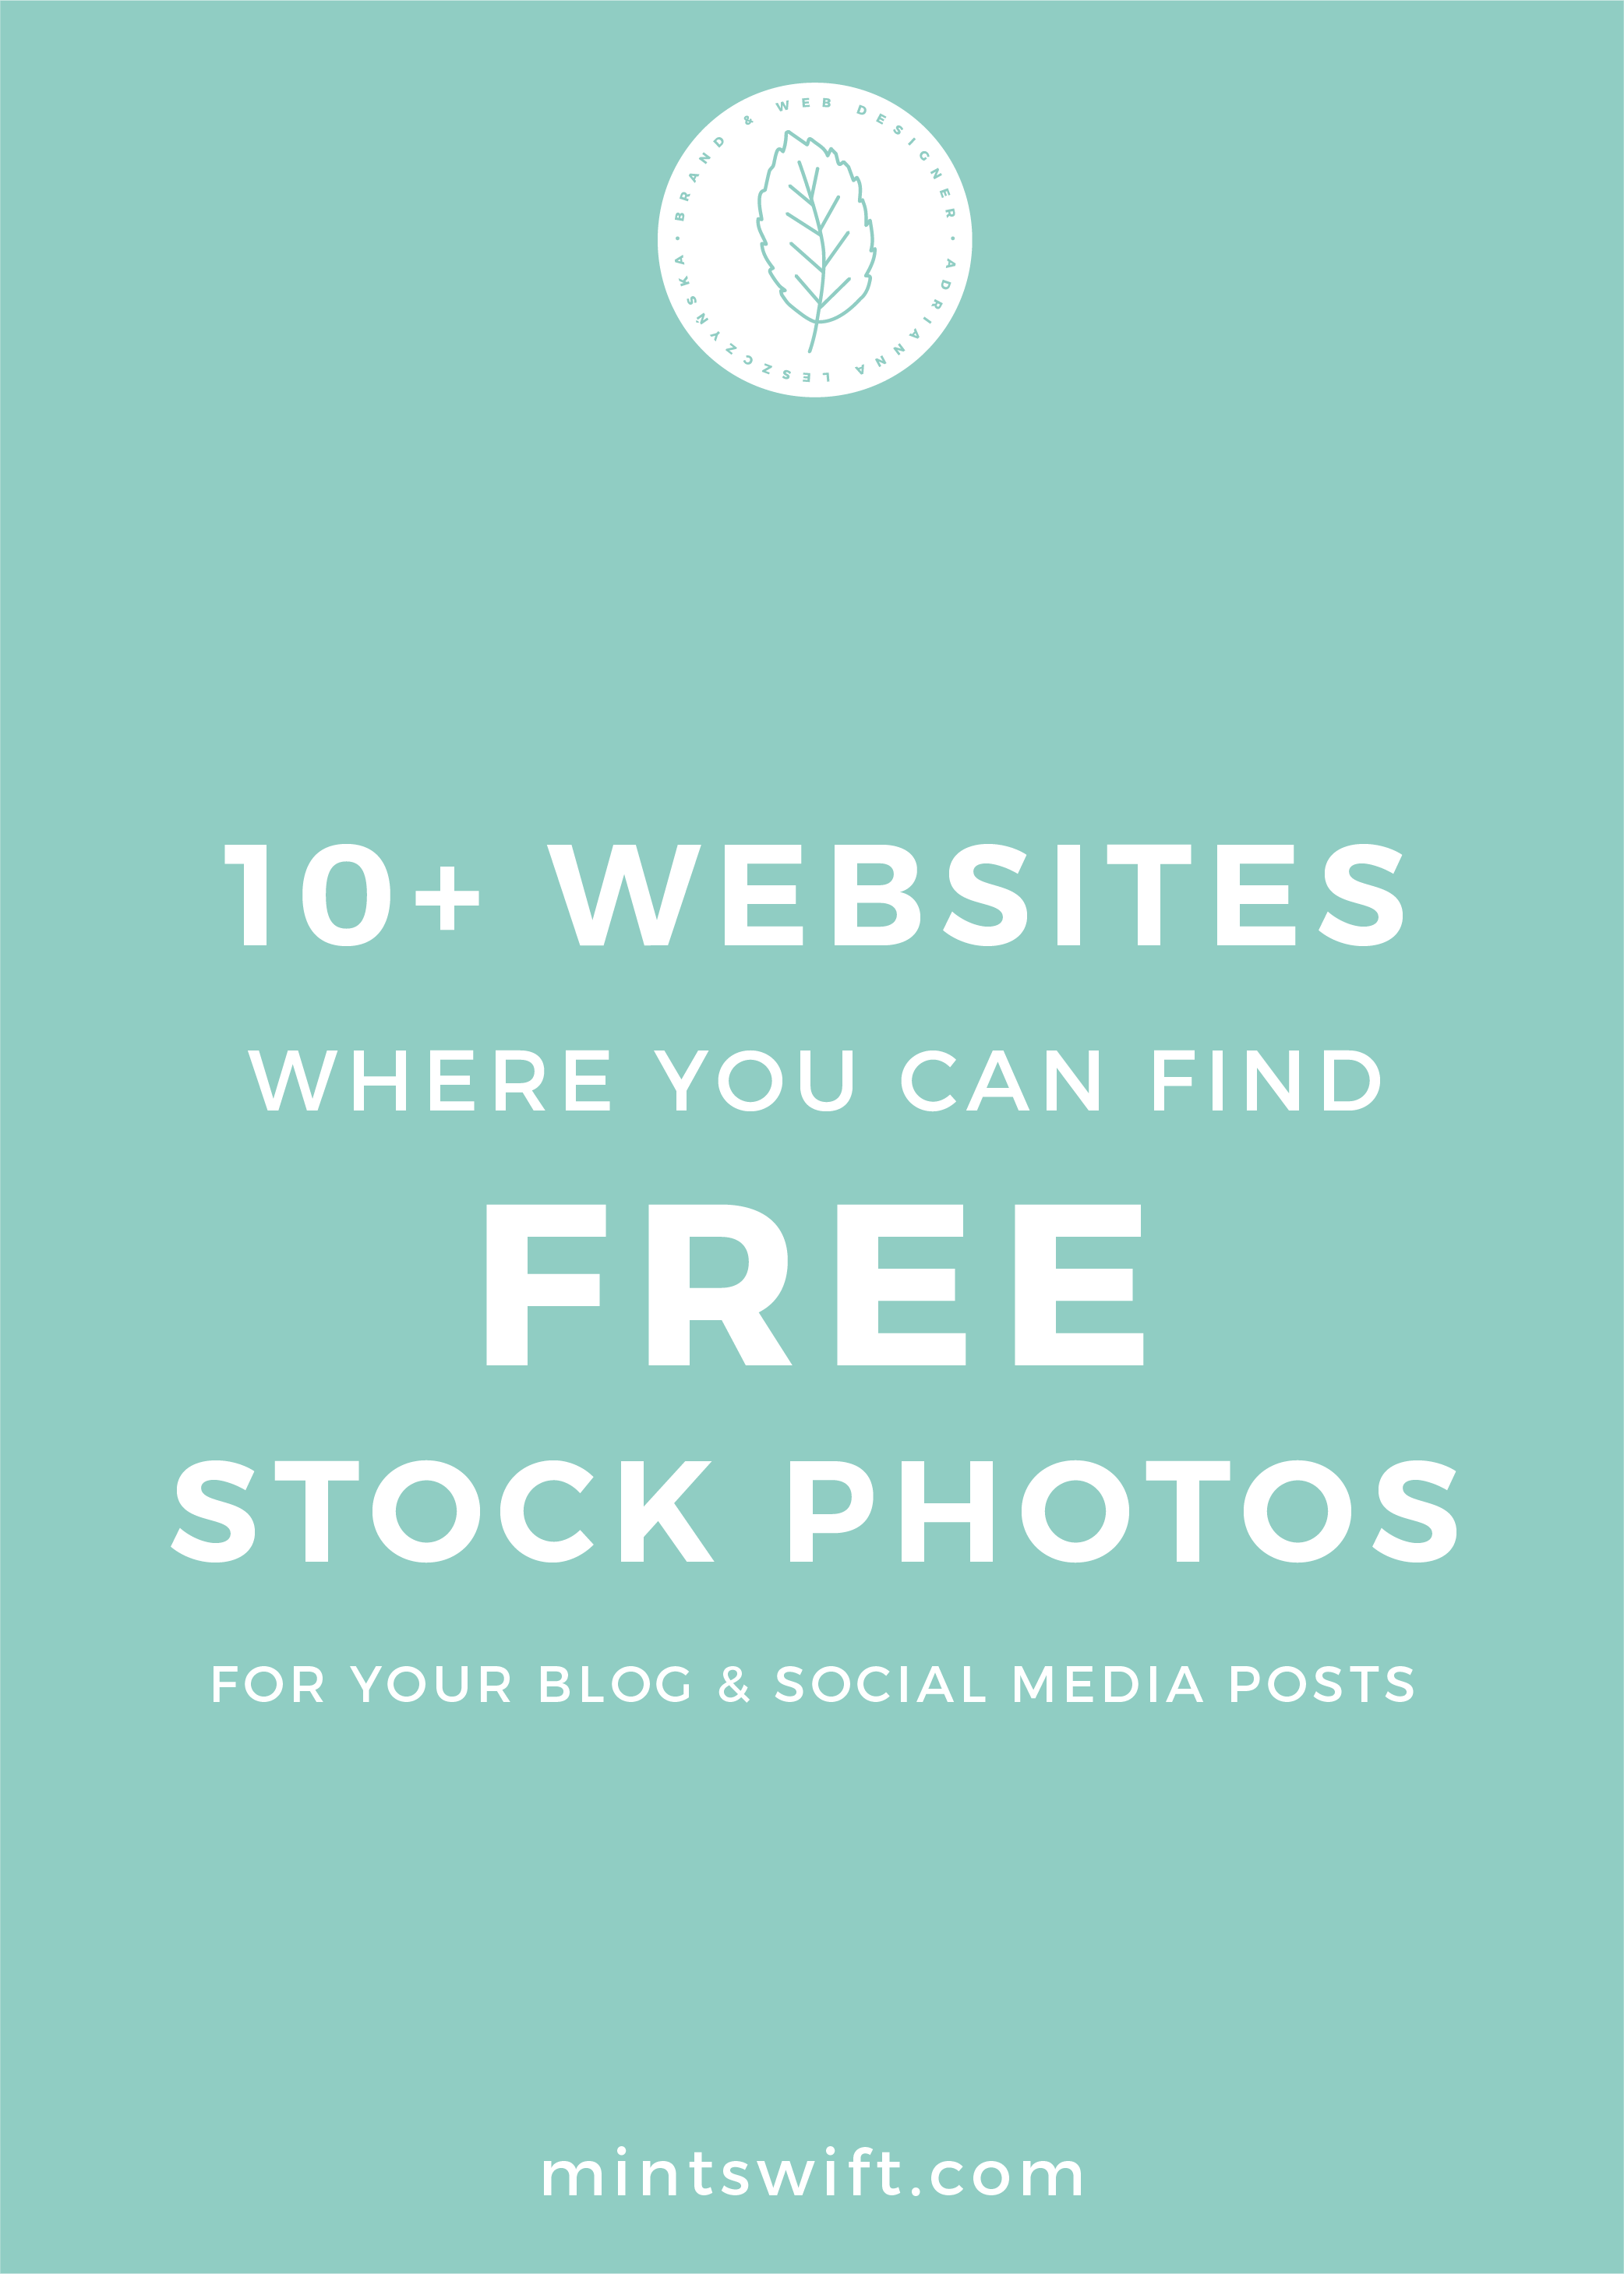 10+ Websites Where You Can Find Free Stock Photos for Your Blog and Social Media Posts - MintSwift